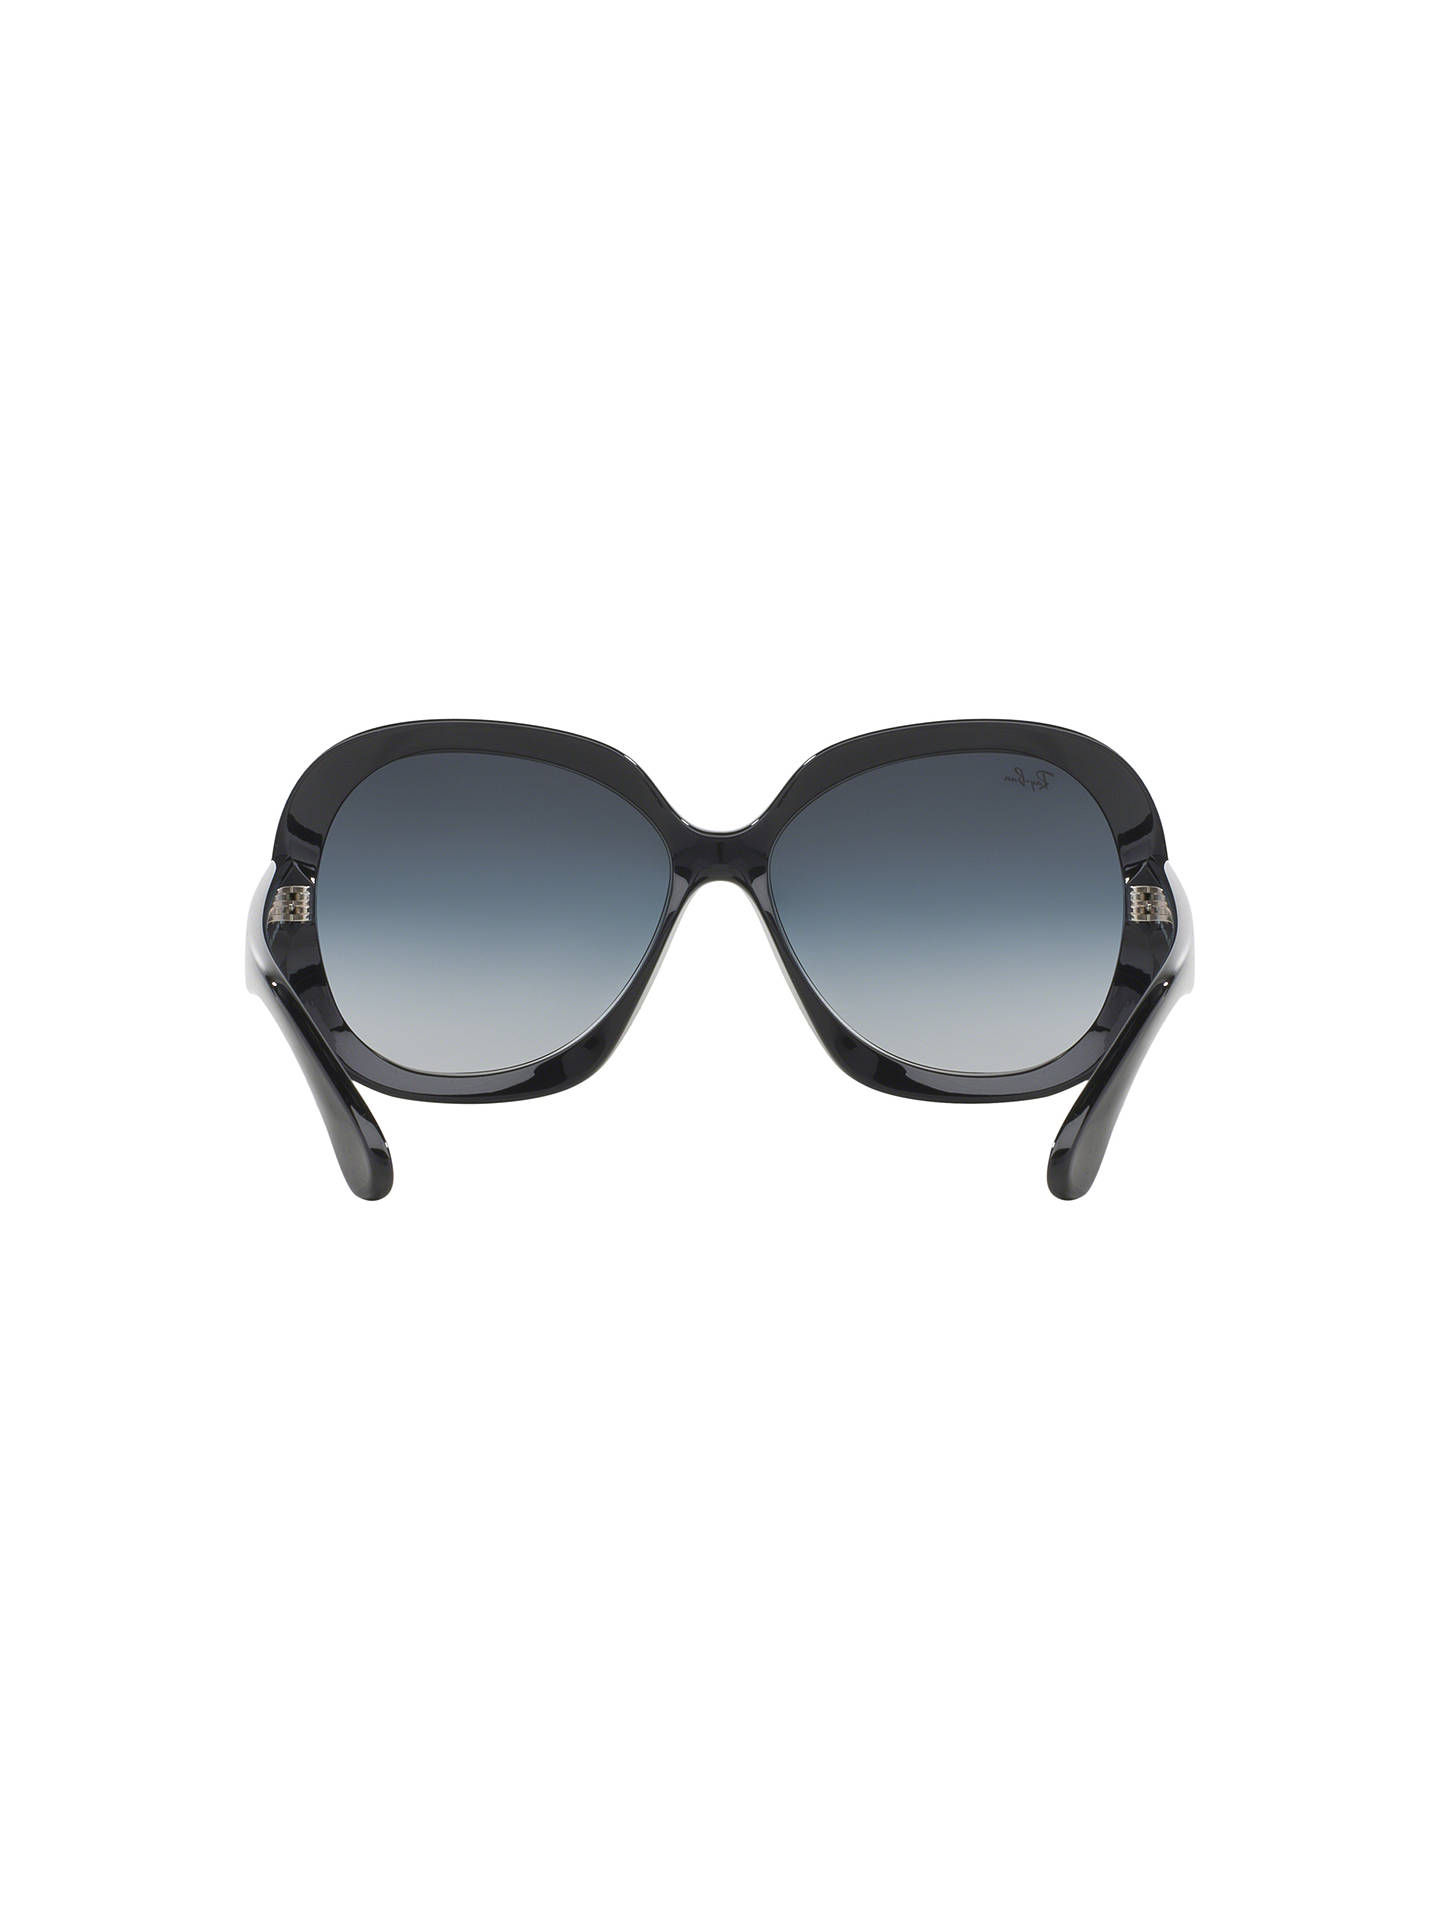 4ca53b8e76 ... Buy Ray-Ban RB4098 Jackie Ohh II Oversized Sunglasses, Black/Grey  Gradient Online ...